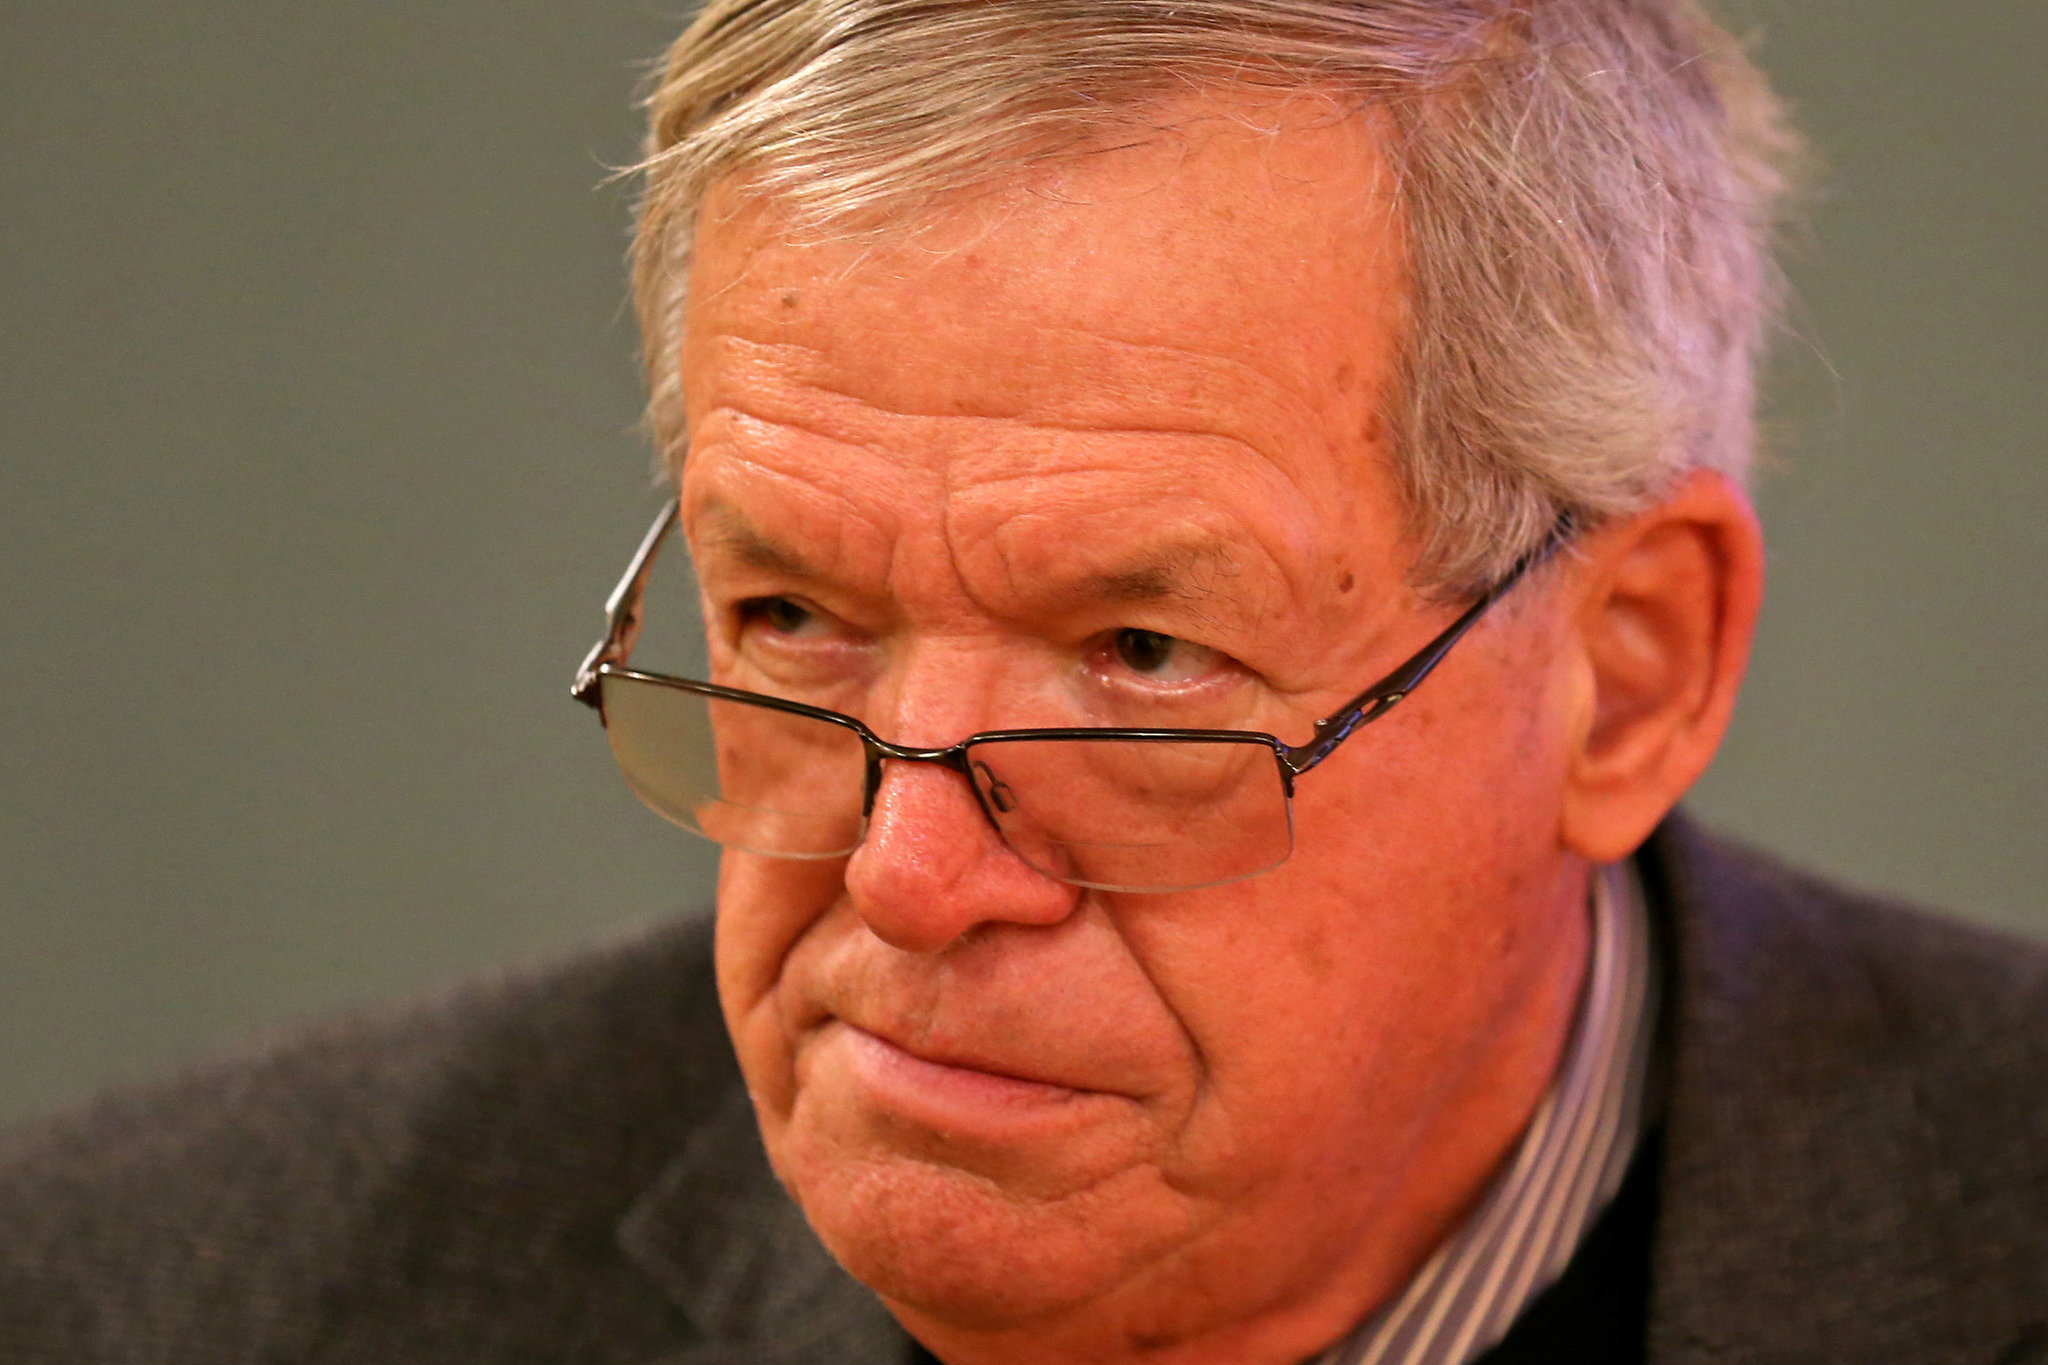 Preview of former House Speaker Dennis Hastert's first appearance in federal court. (The Guardian)